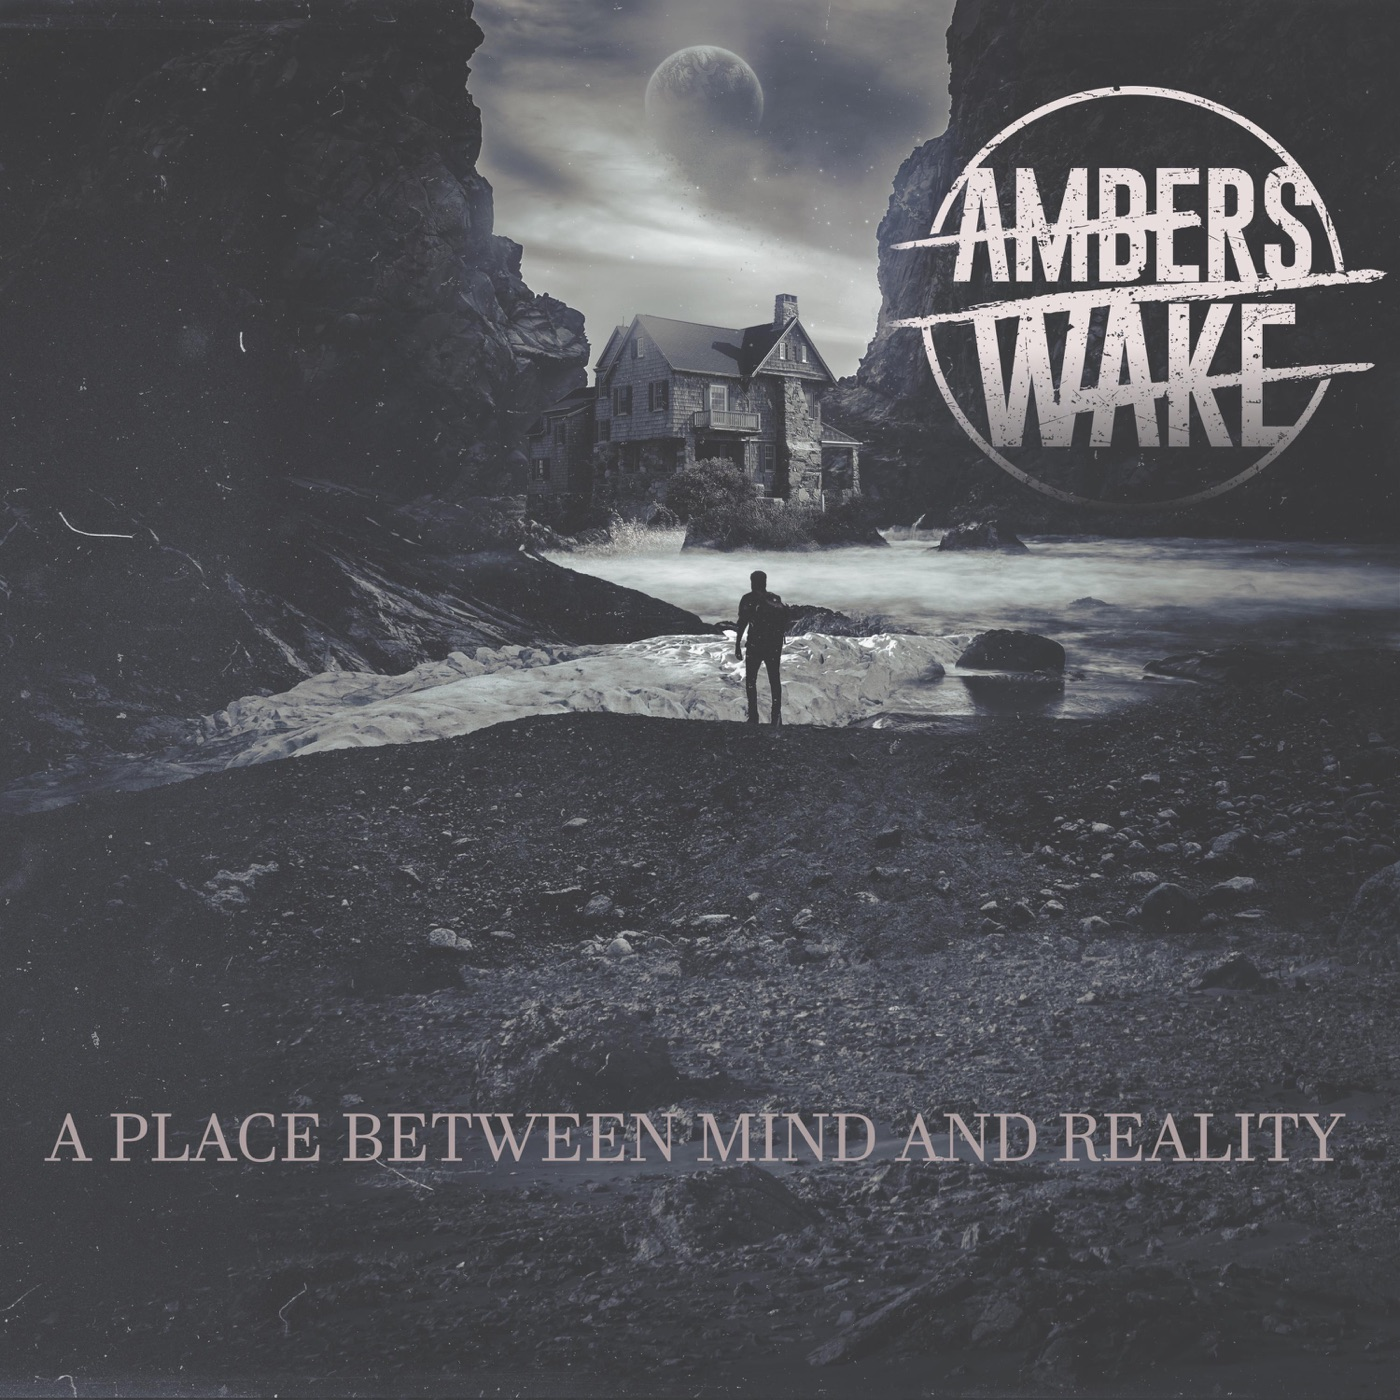 Ambers Wake - A Place Between Mind and Reality (2018)